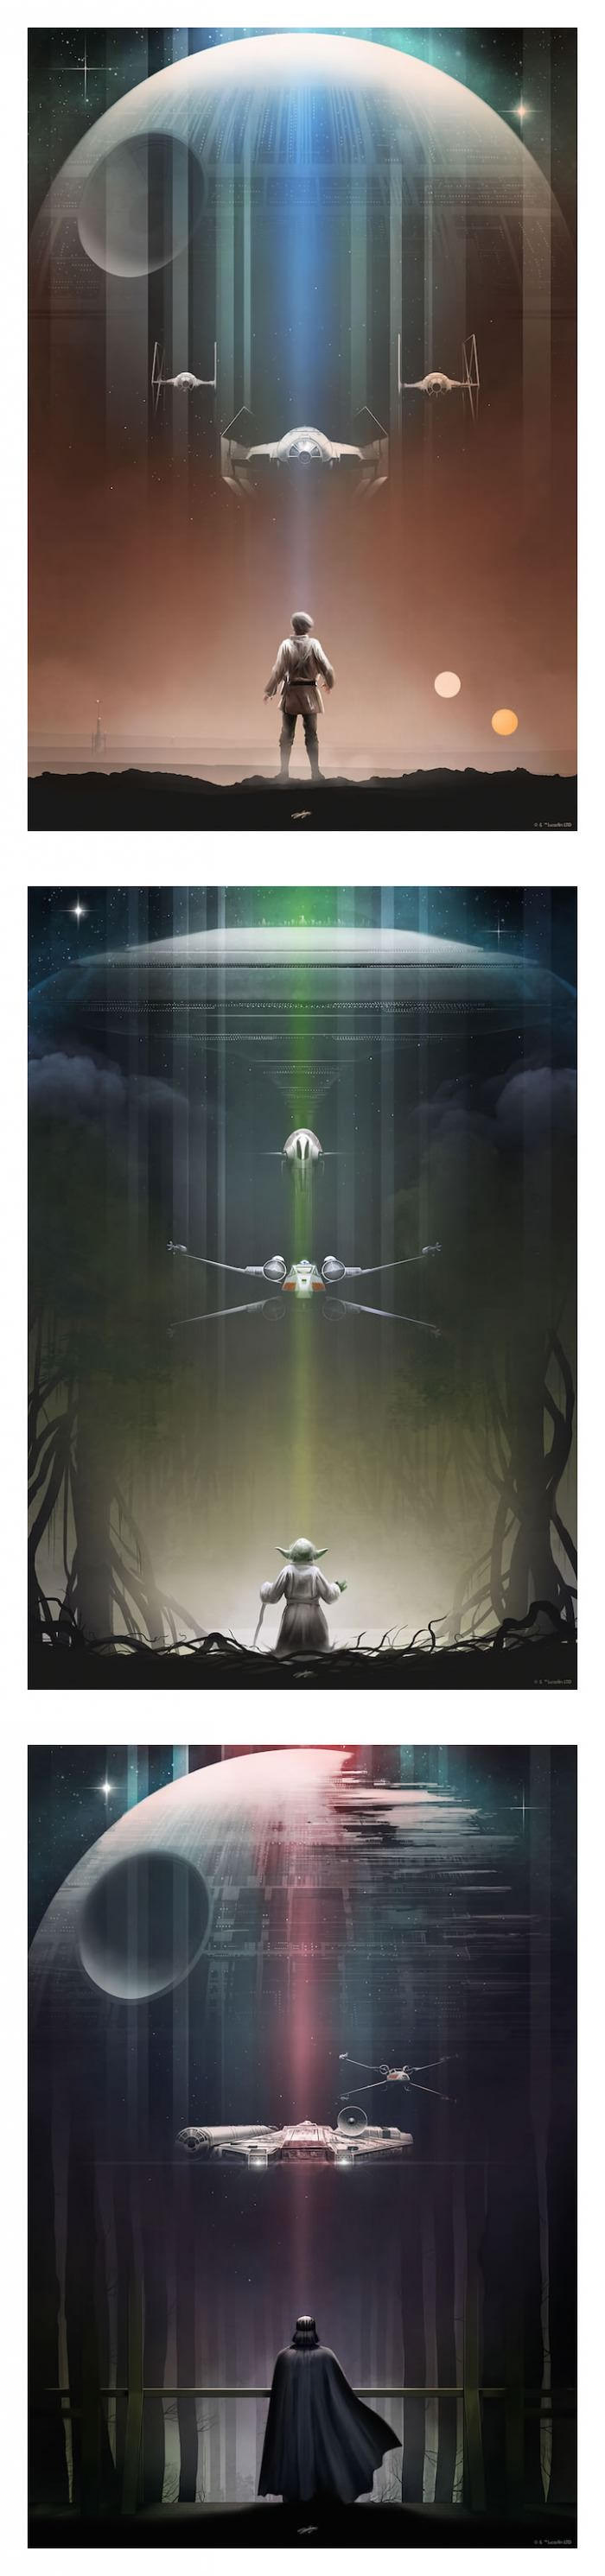 Awesome Star Wars posters by Andy Fairhurst